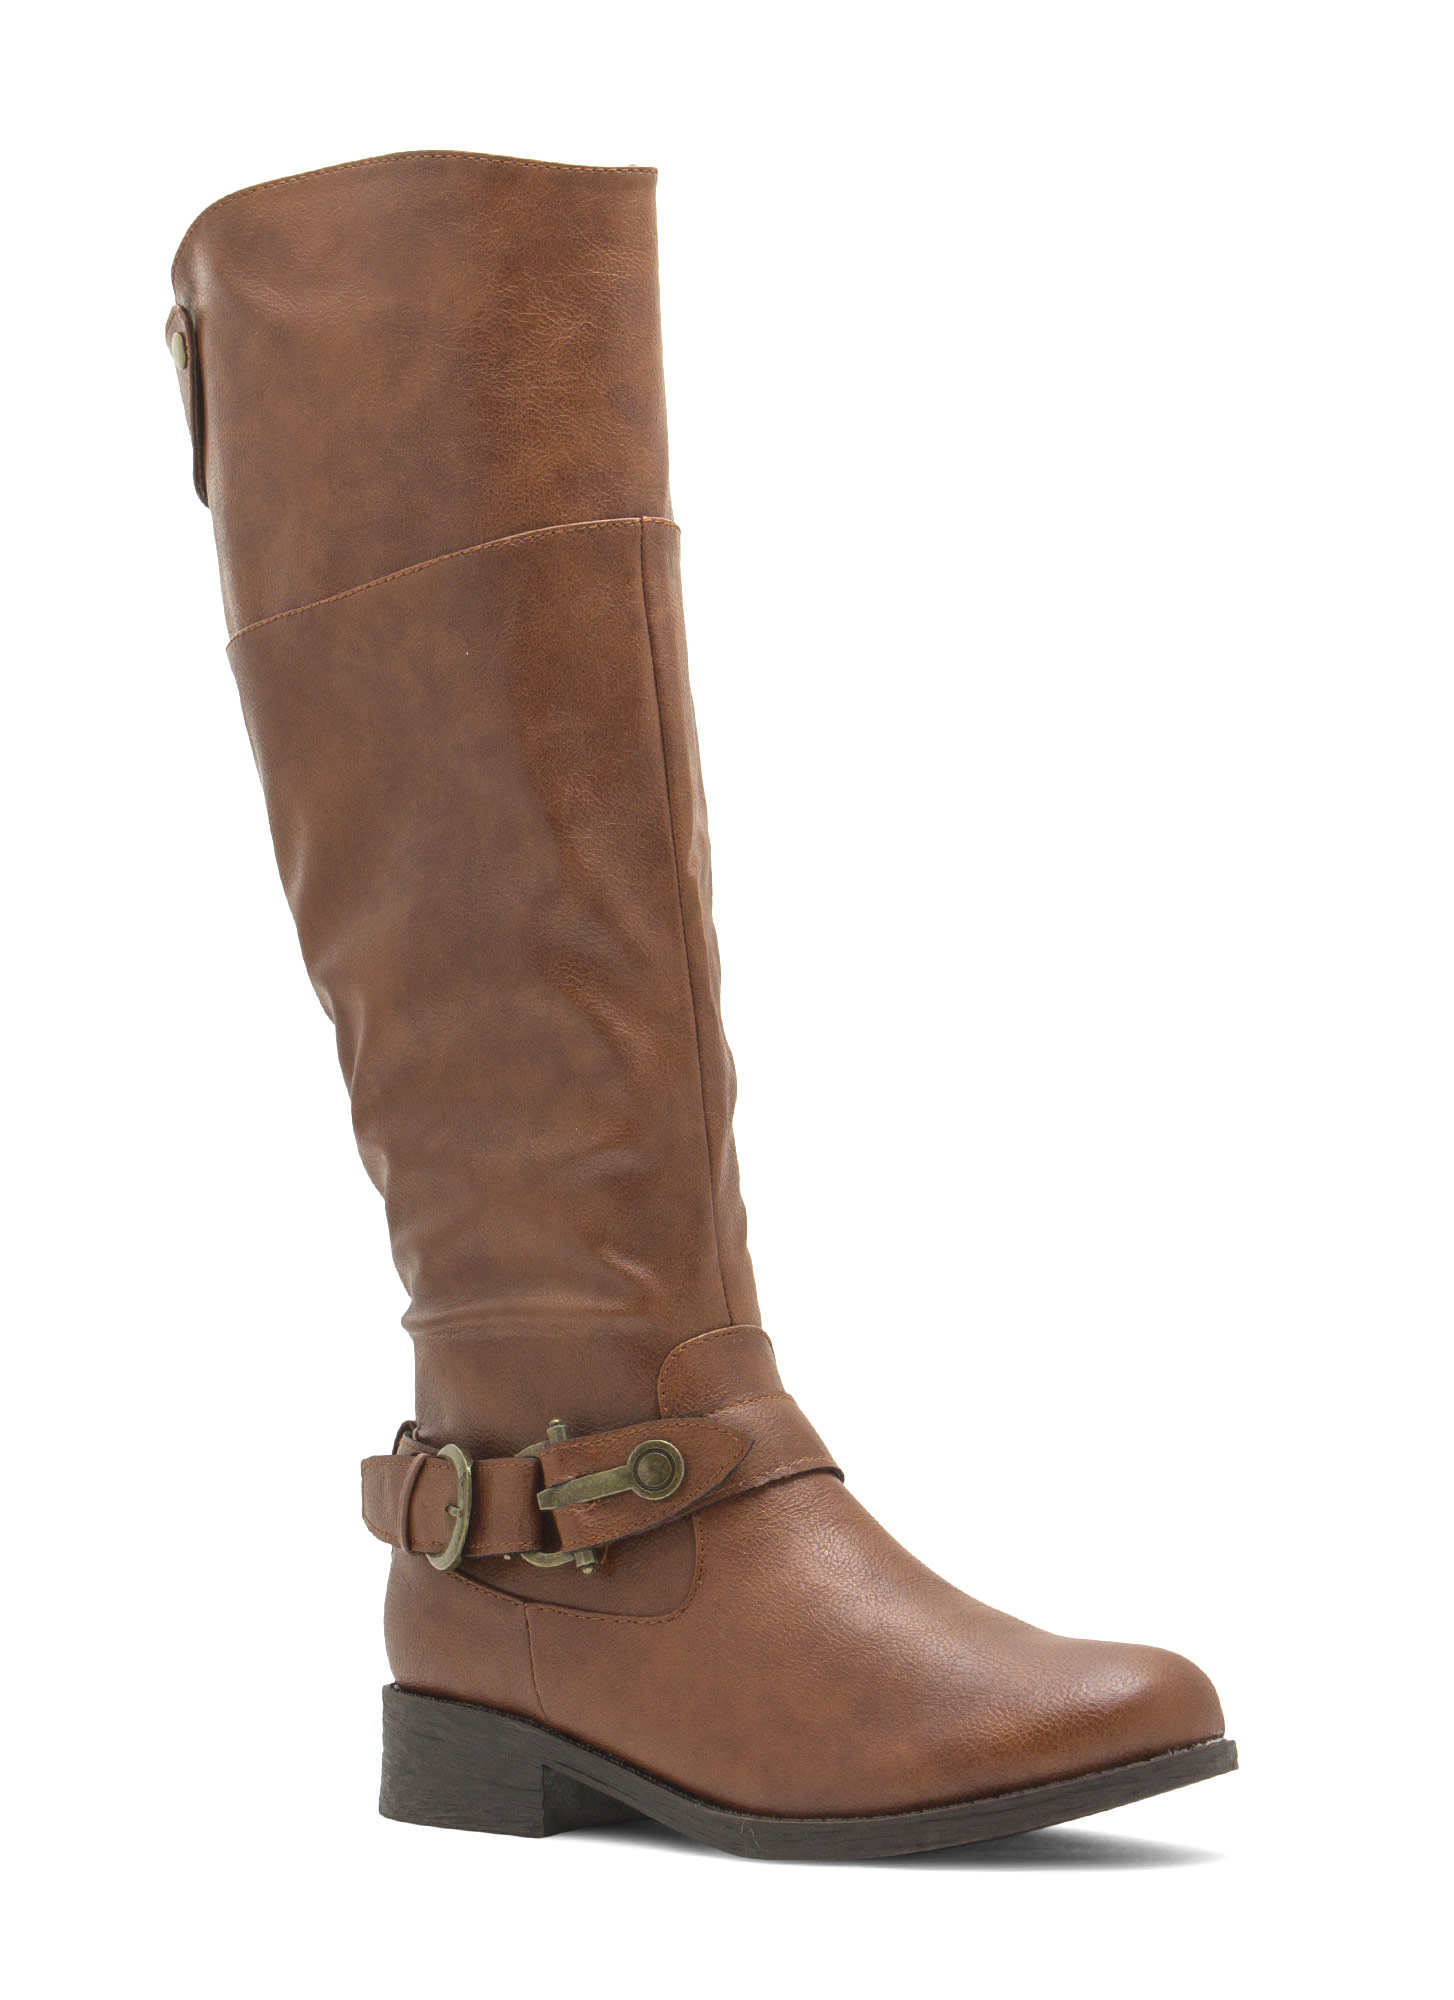 Time 2 Buckle Down Faux Leather Boots CHESTNUT